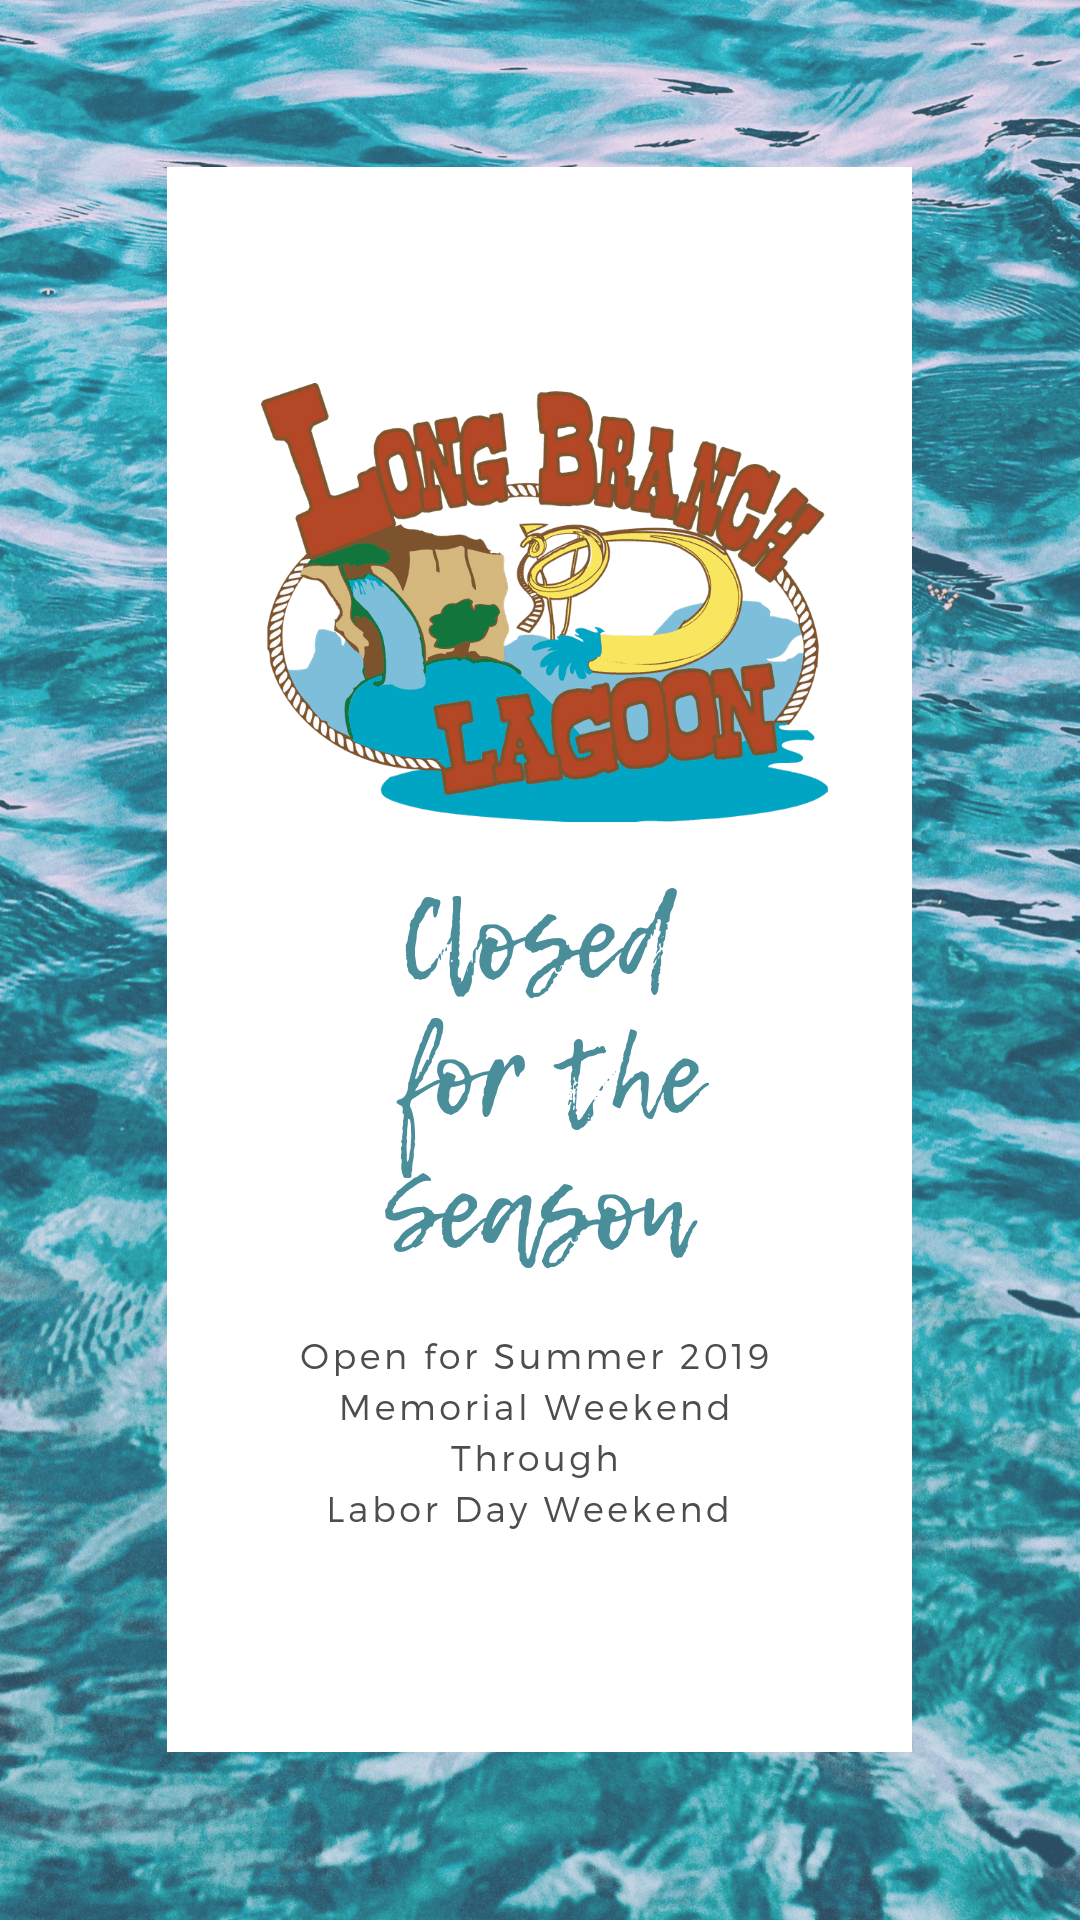 Closed for the Season - Reopen Memorial Weekend 2019